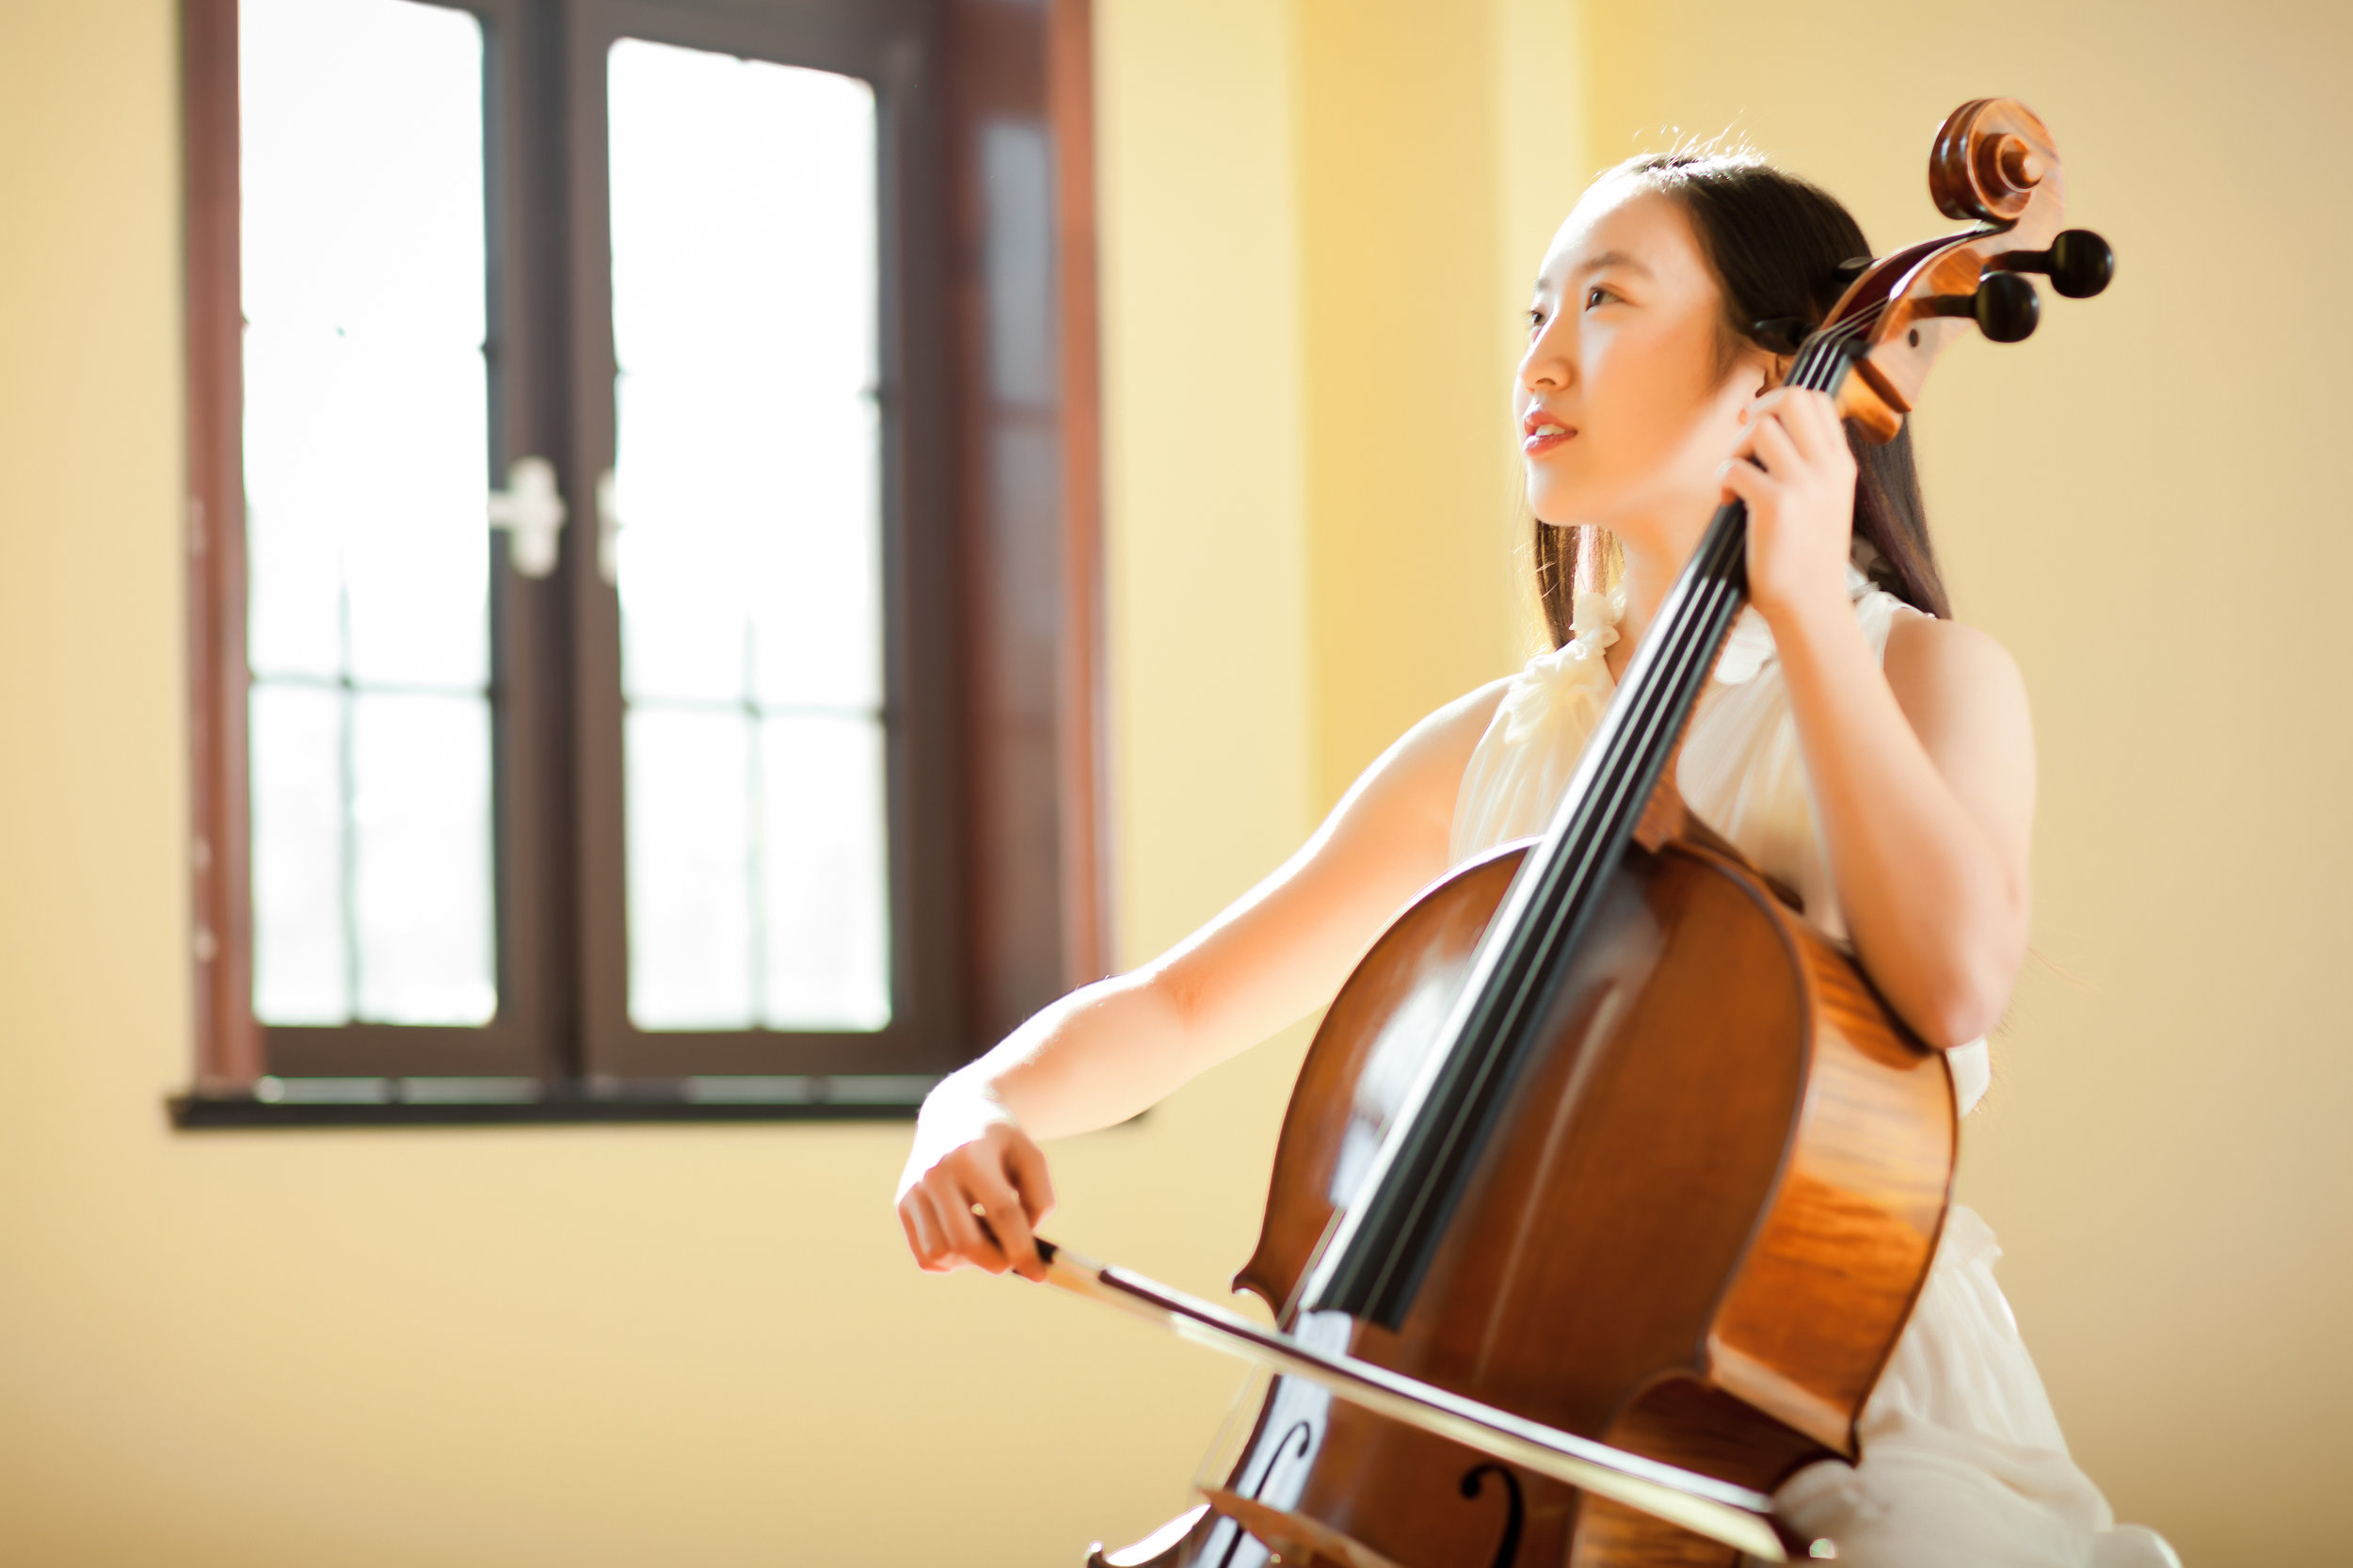 cms istock asian girl playing cello.jpg